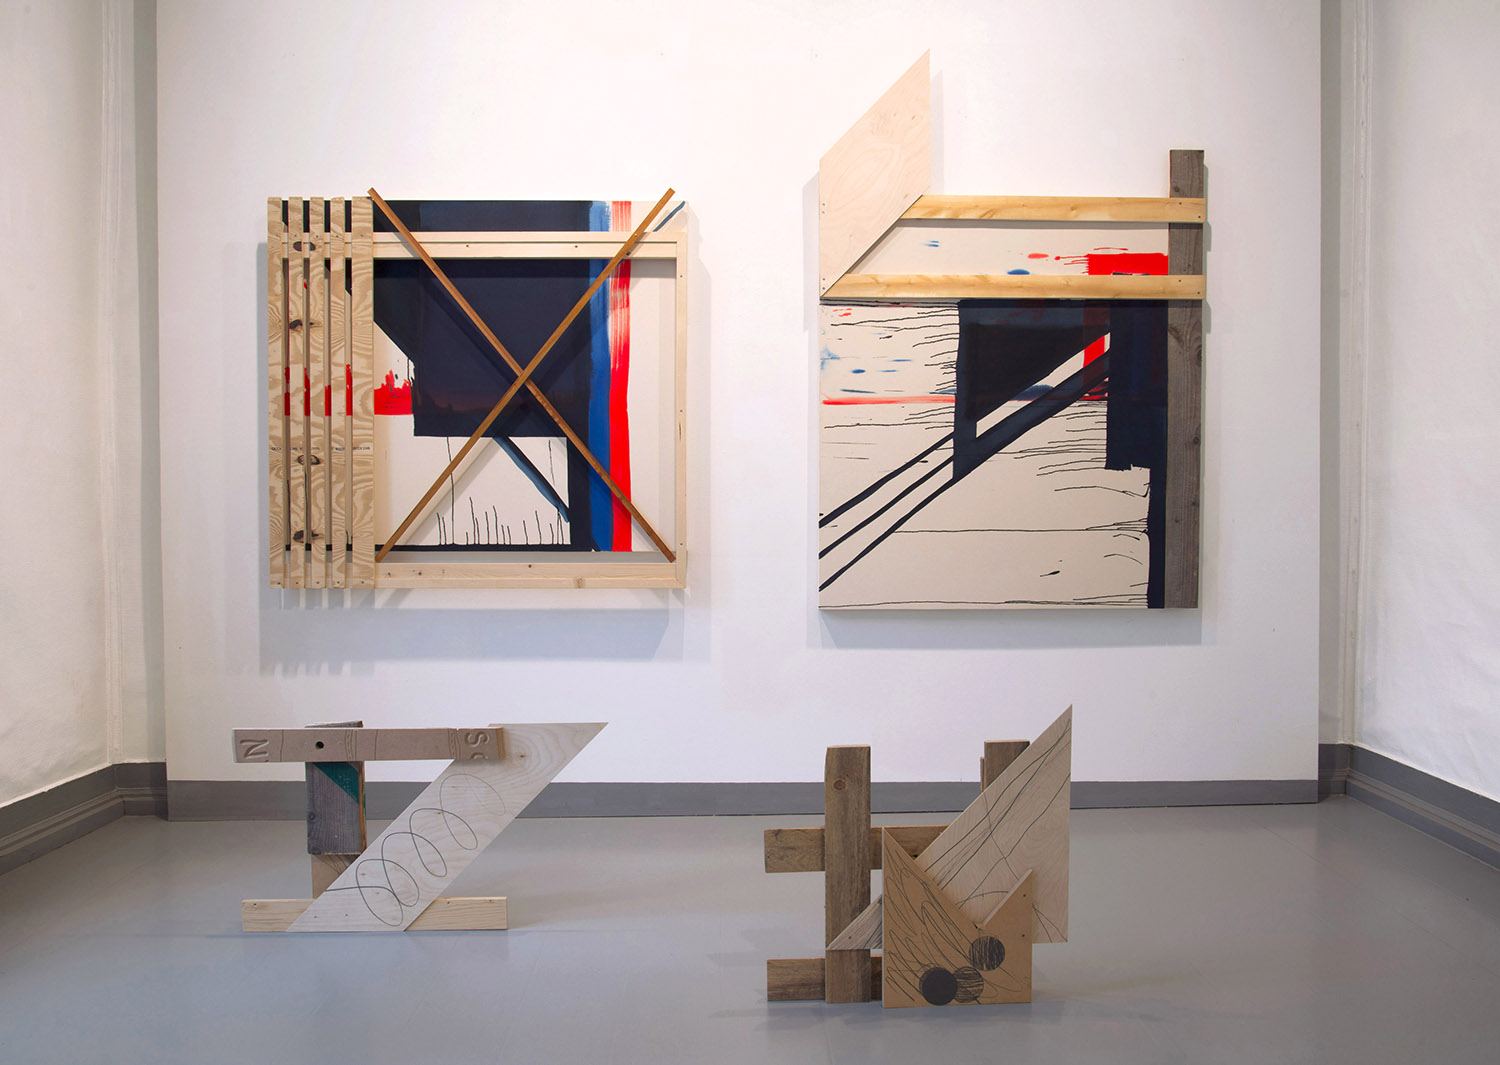 Installation photo from the duo exhibition  Logg  with LIne Anda Dalmar, Galleri Langegården, 2014 2013 Acryllic on raw canvas and wood, pencil on wood objects